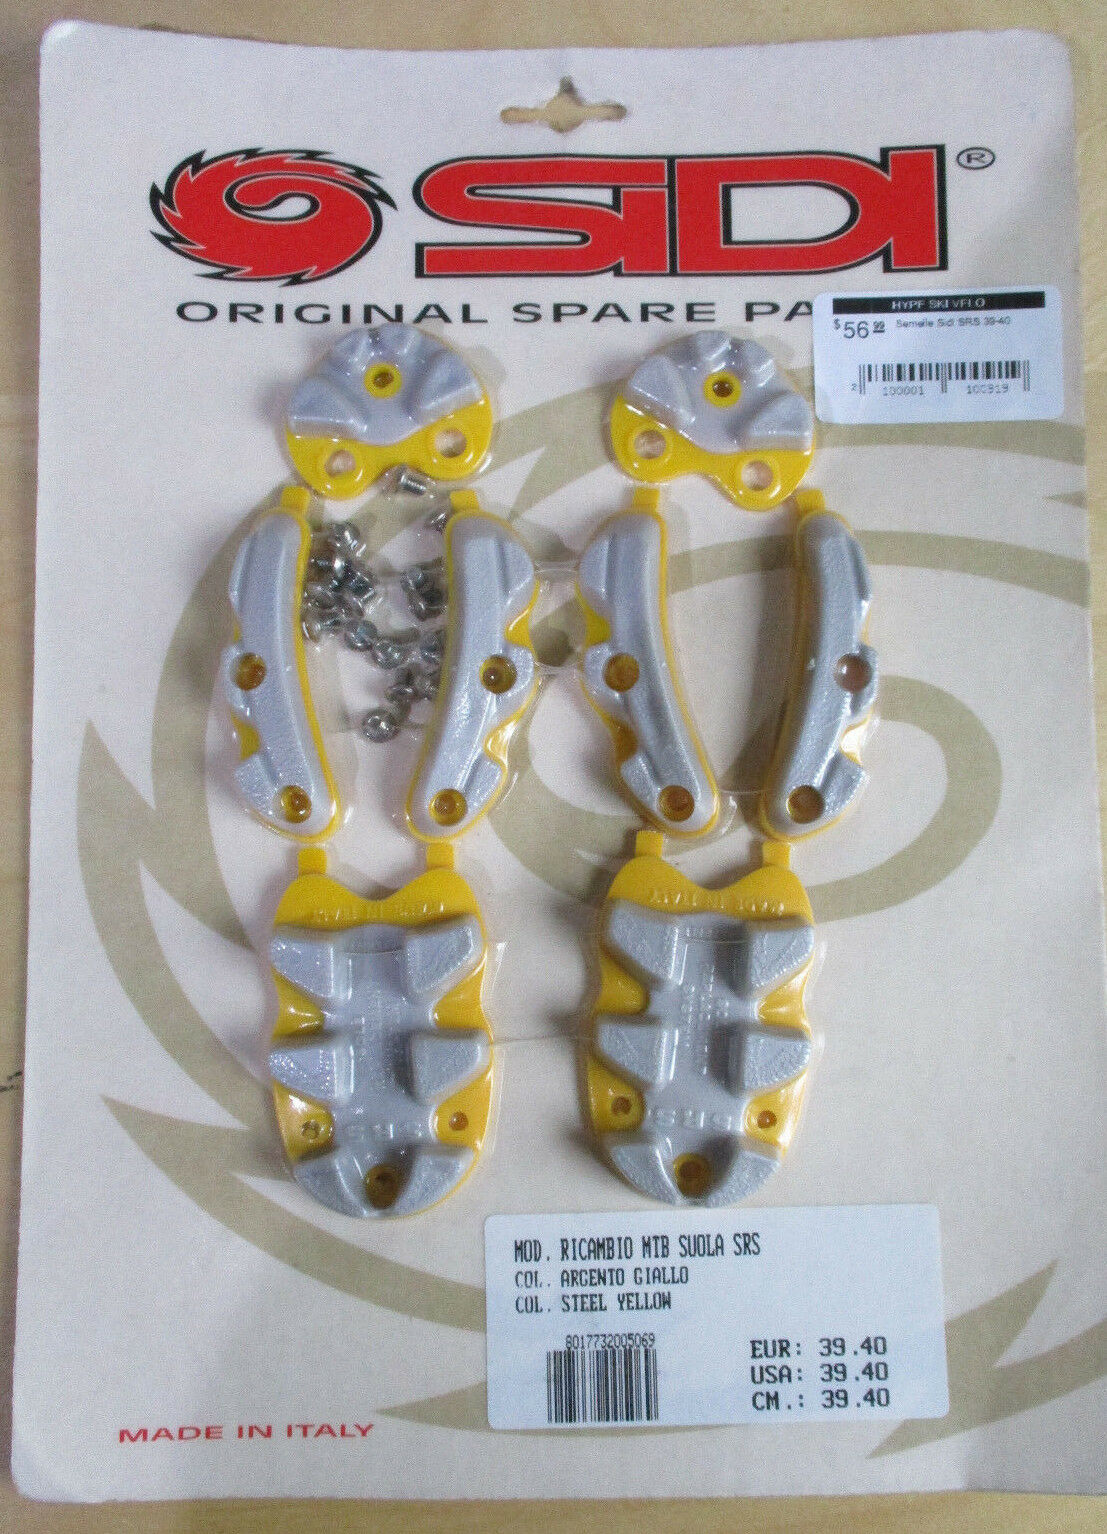 New Sidi SRS Cycling shoes Replacement Sole Rebuild Kit 45-48 Grey Yellow MTB